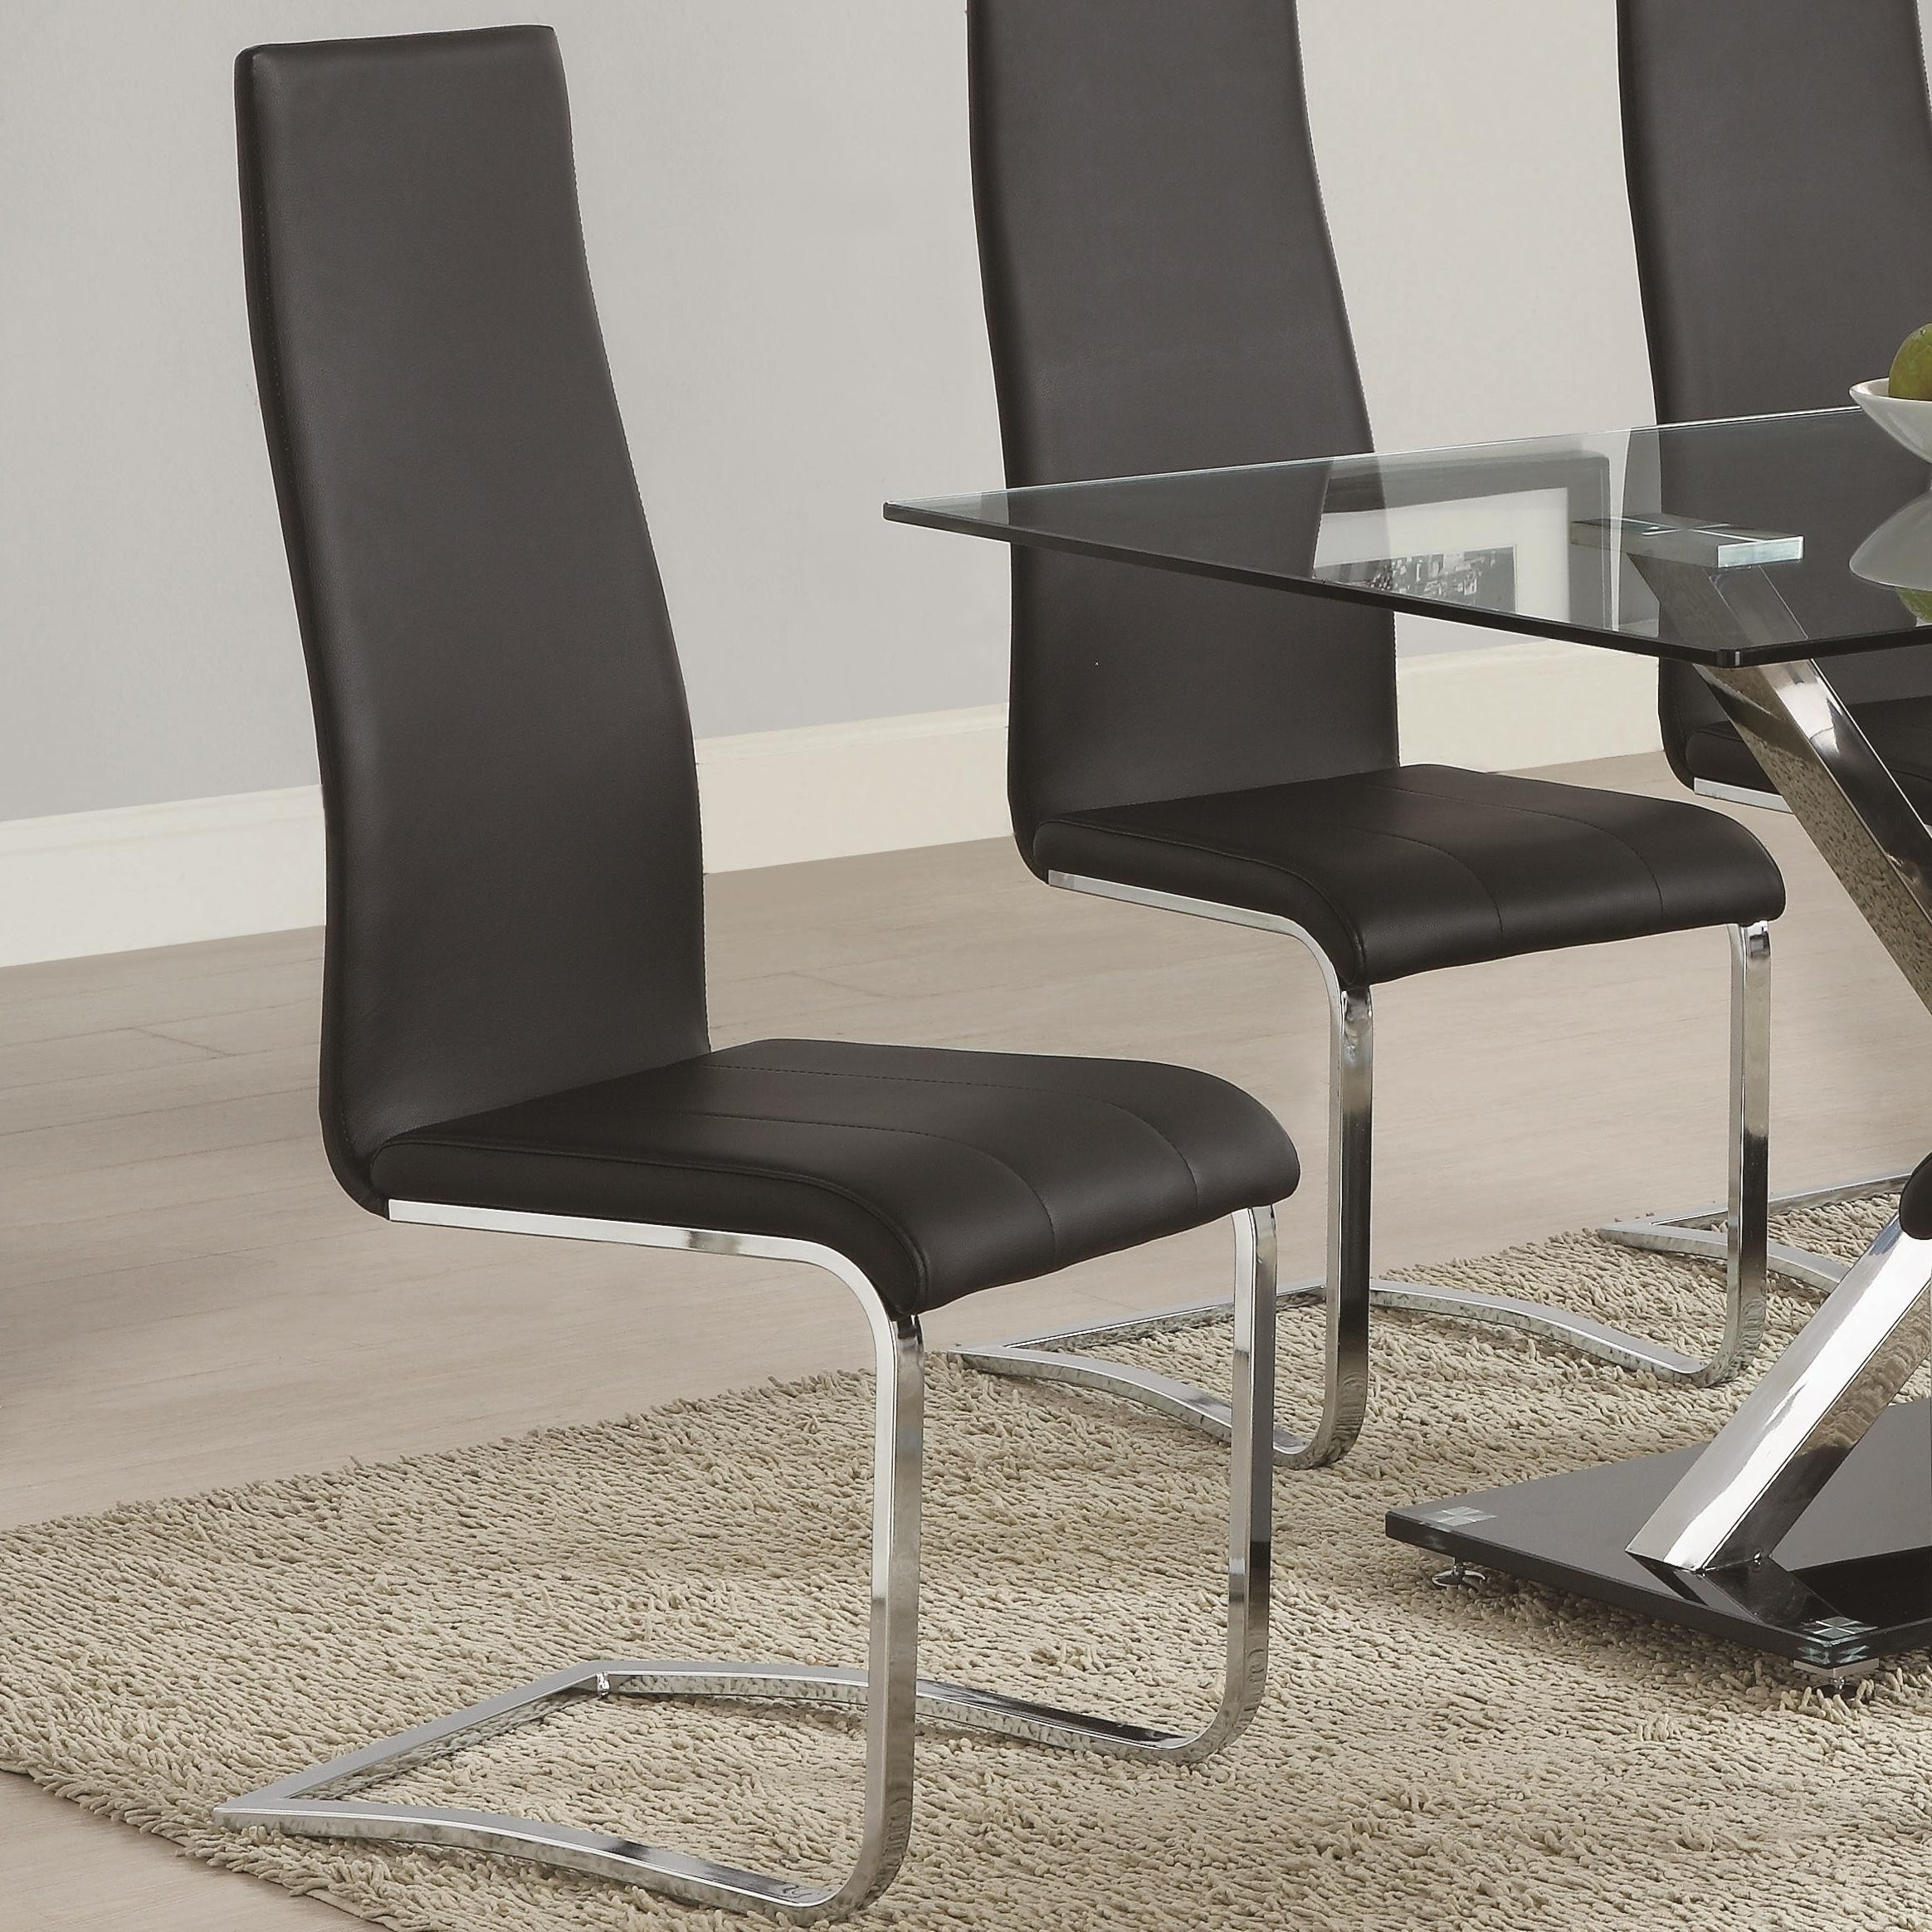 Fashionable Buy Set Of 4 Modern Dining Black Faux Leather Dining Chairs With Regarding Chrome Leather Dining Chairs (View 15 of 25)